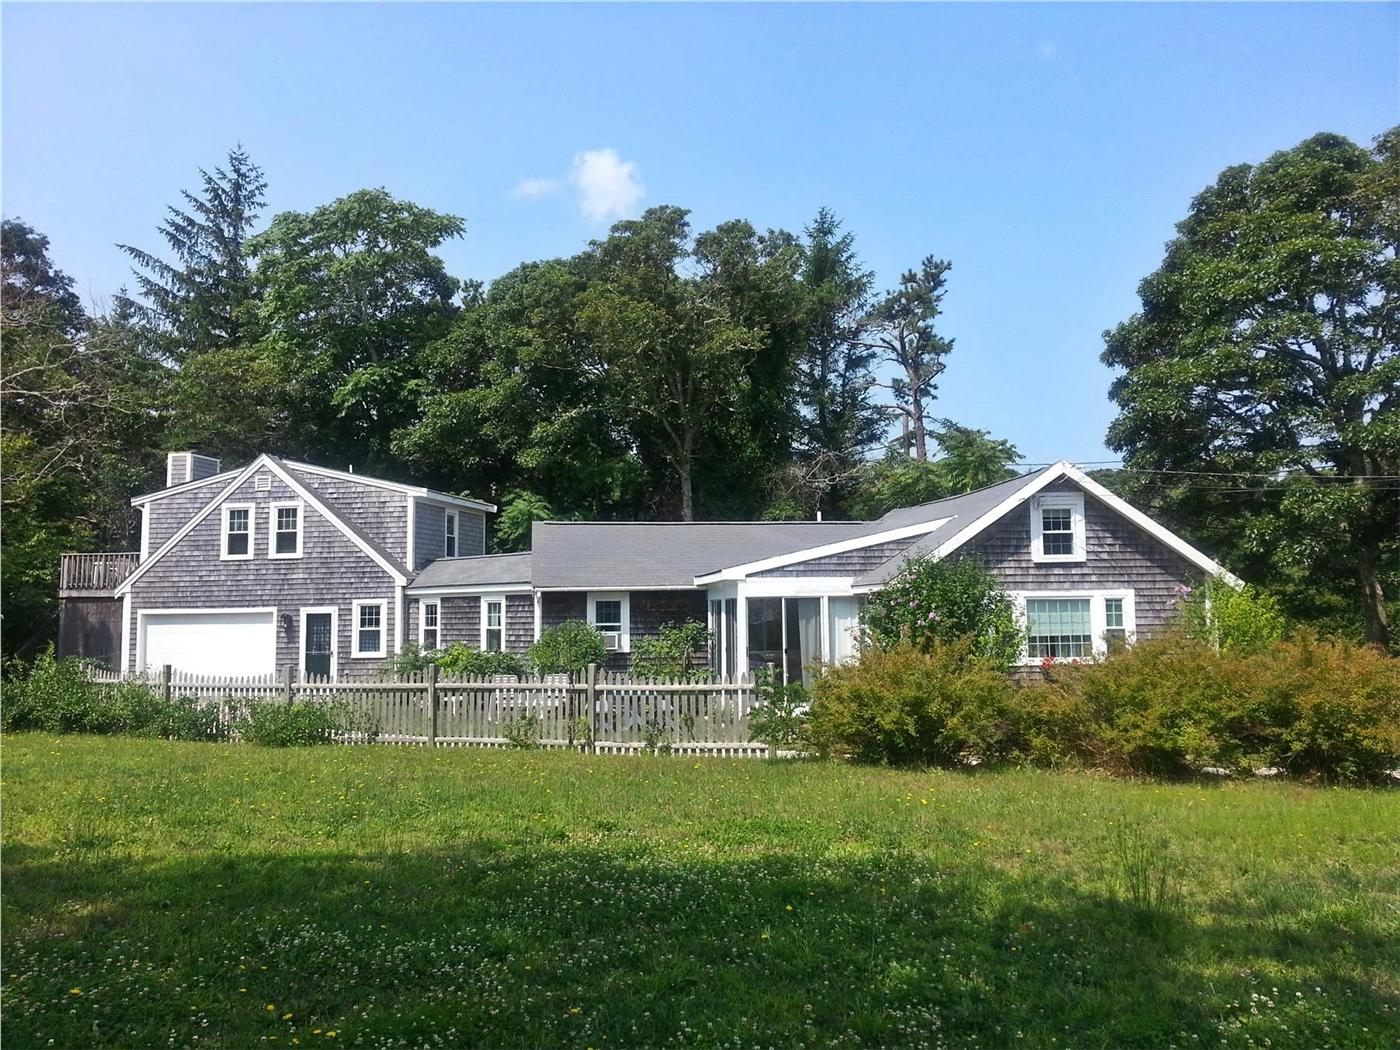 Brewster Vacation Rental Home In Cape Cod Ma 02631 1 2 Mile To Point Of Rocks Beach Id 2166